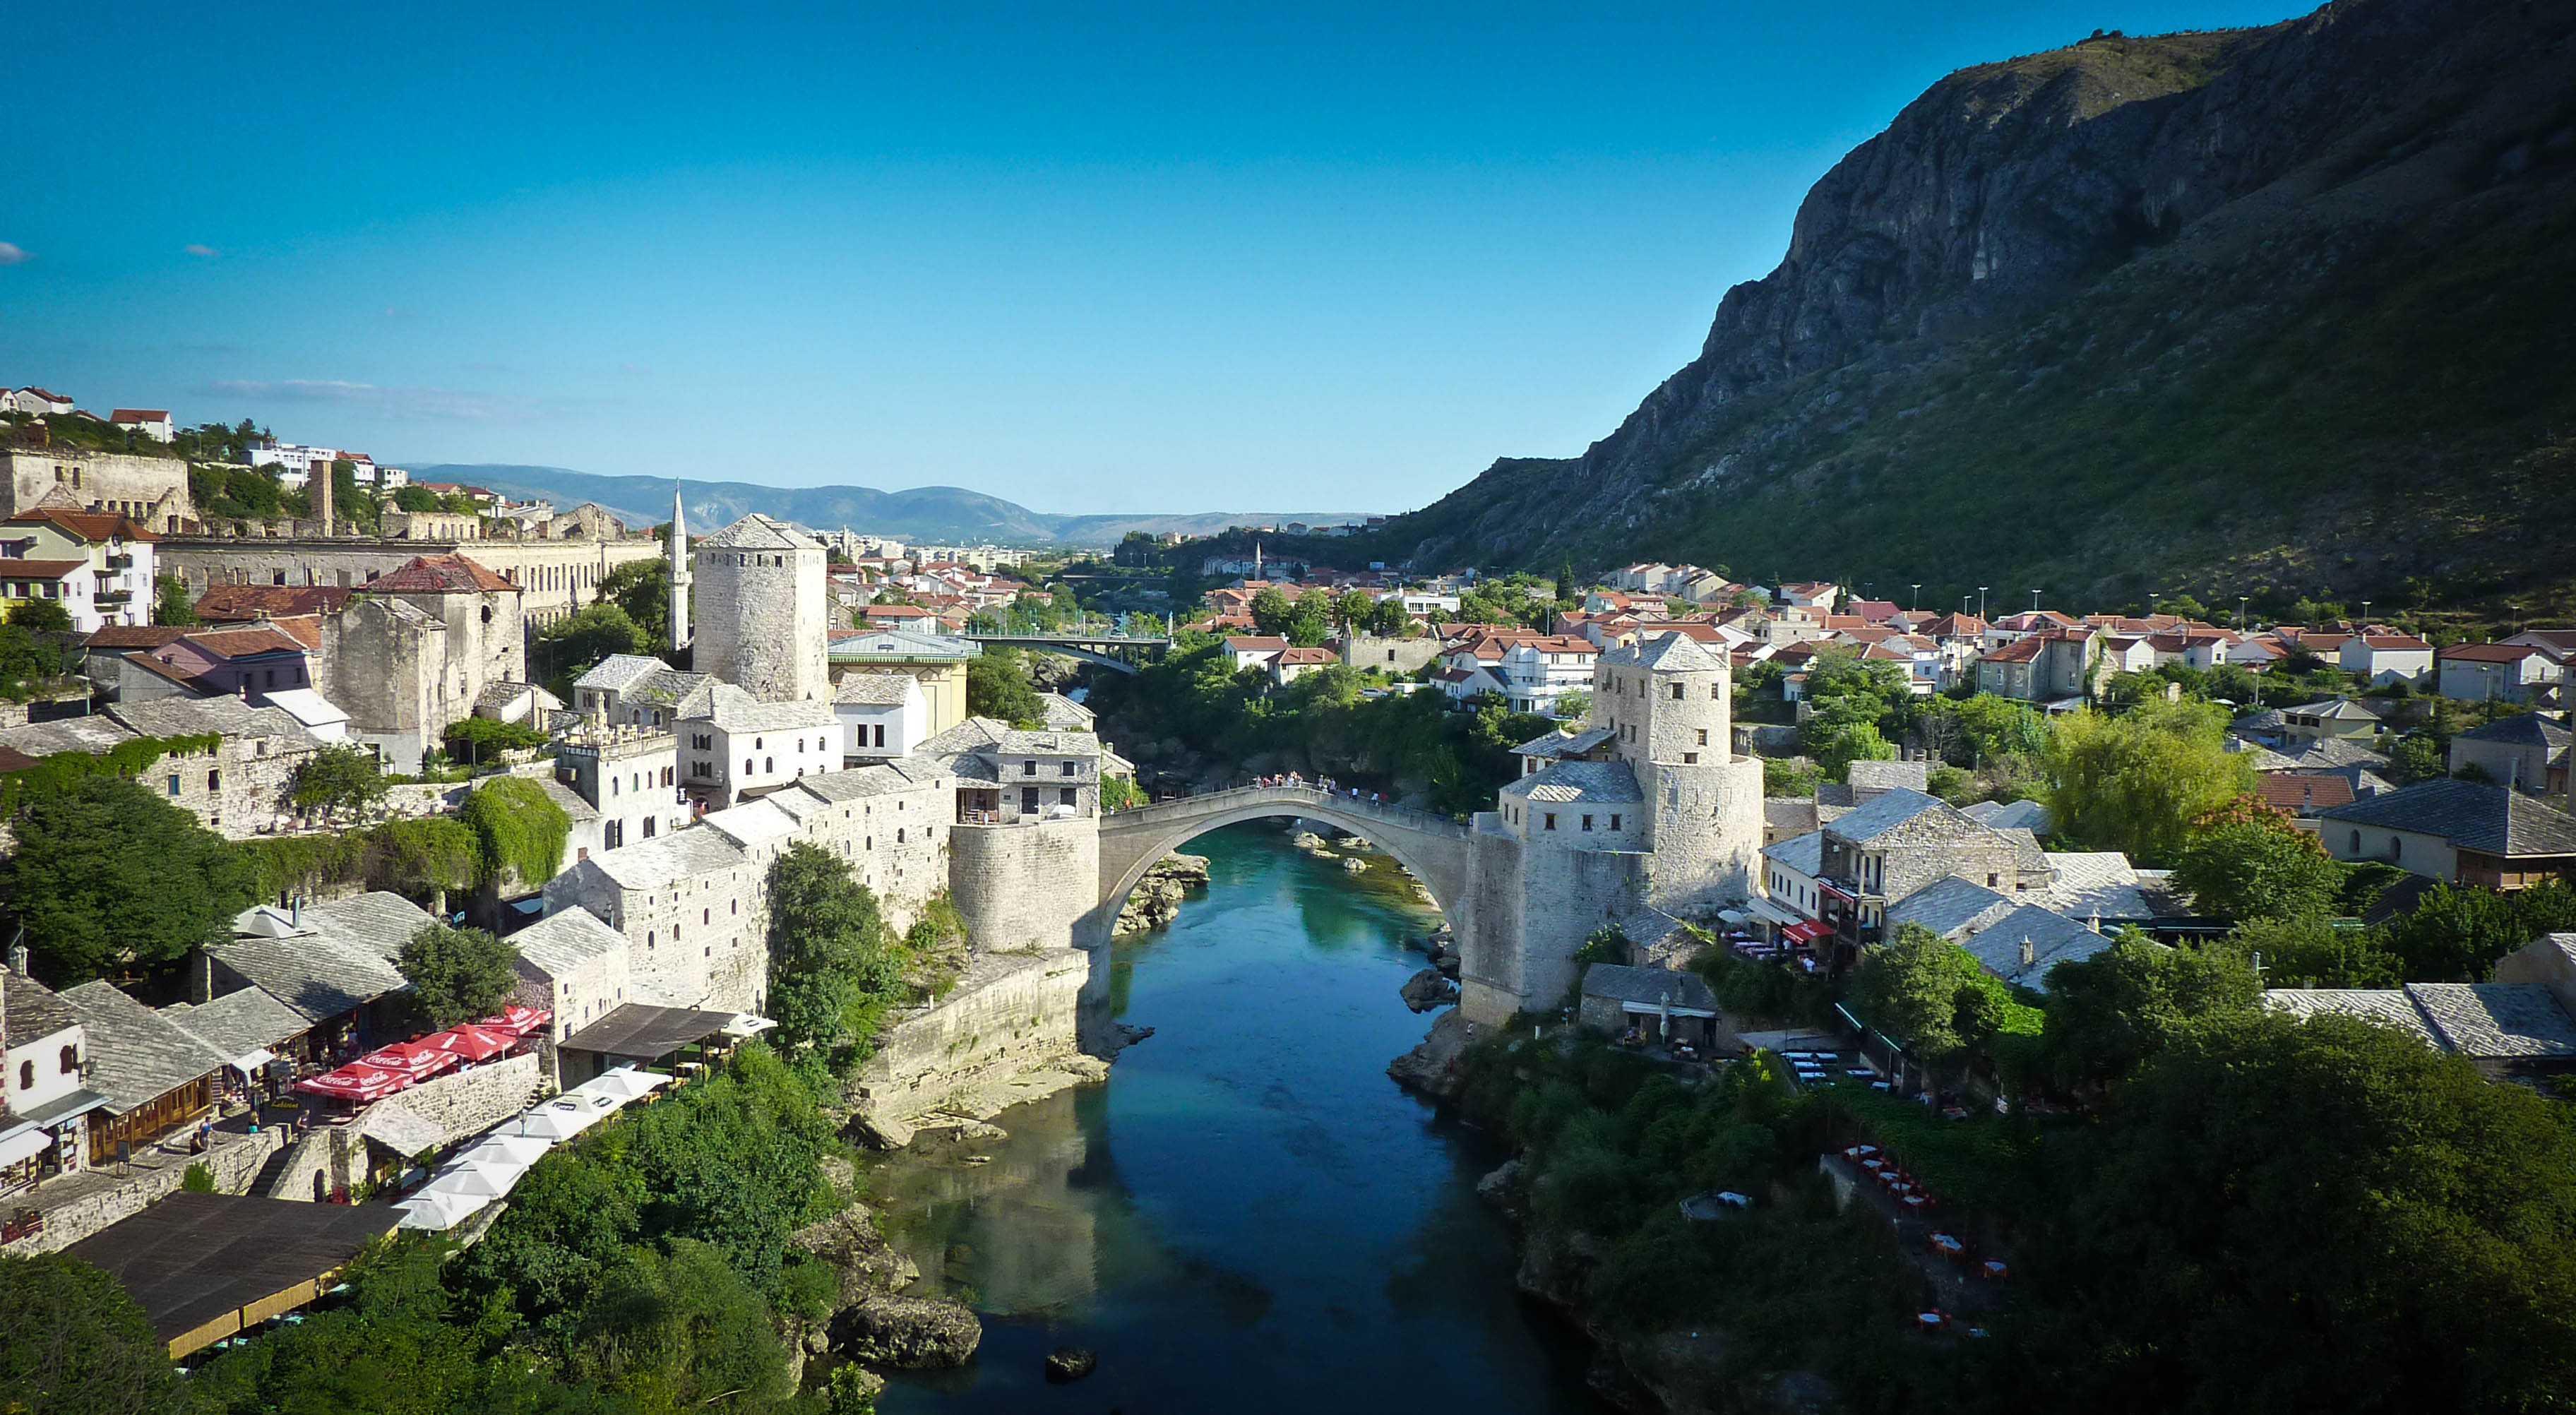 bosnia_mostar_bridge003